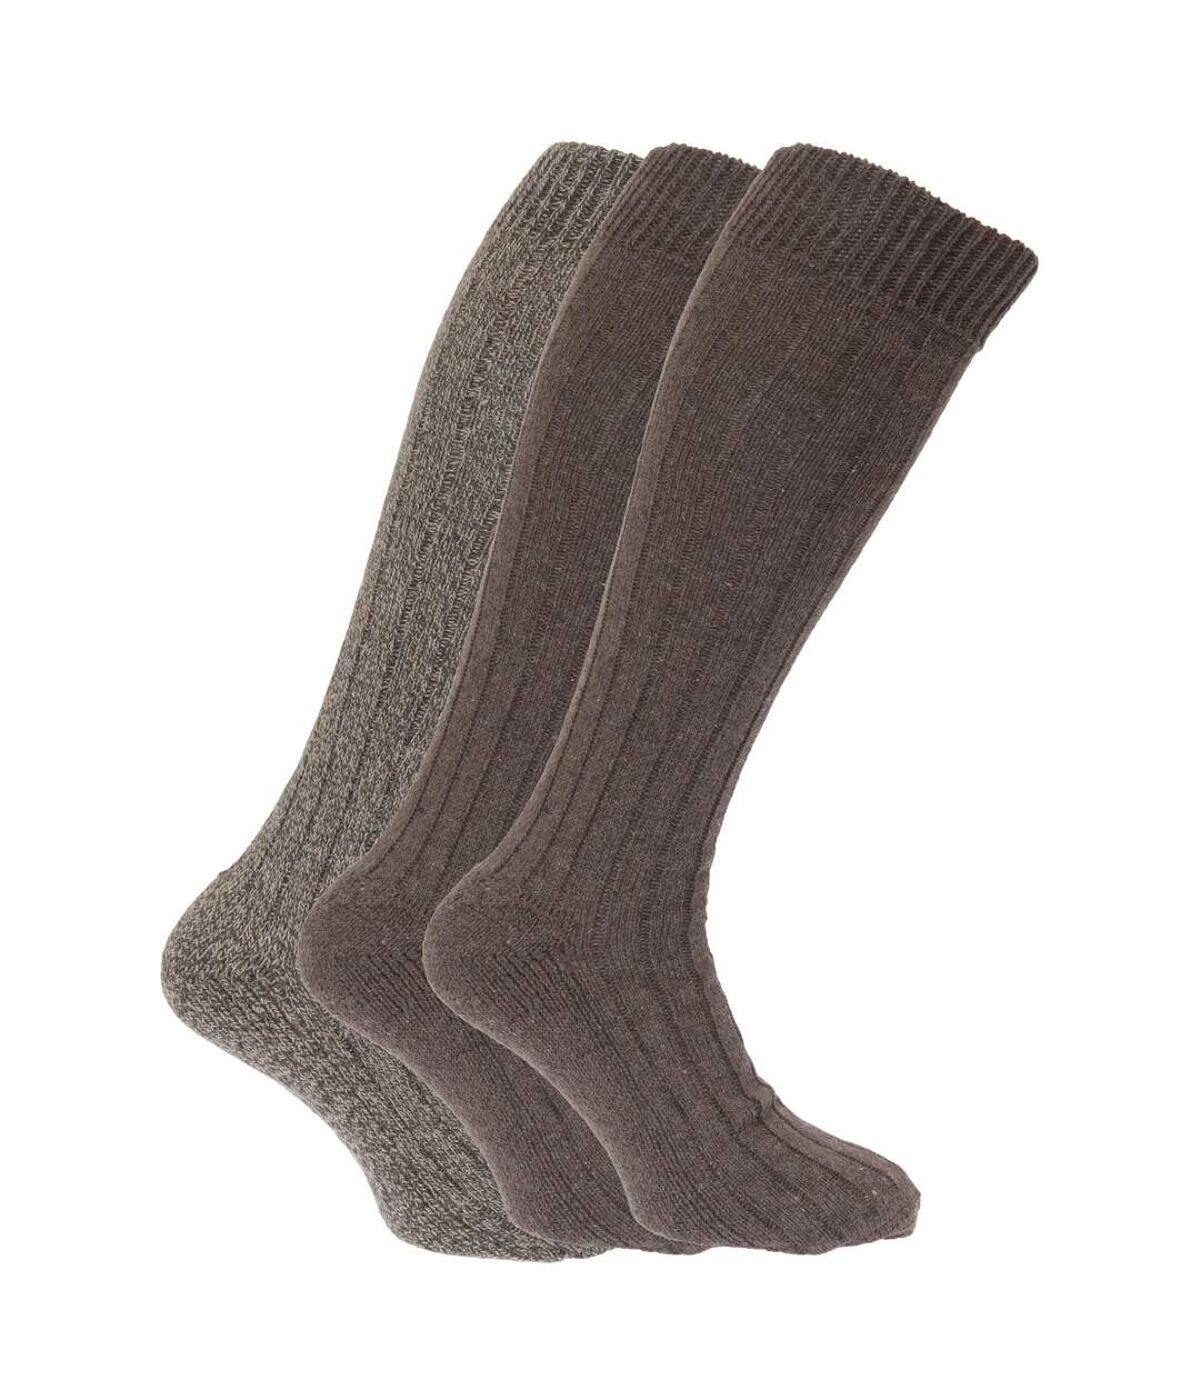 Mens Wool Blend Long Length Socks With Padded Sole (Pack Of 3) (Shades of Brown) - UTMB160